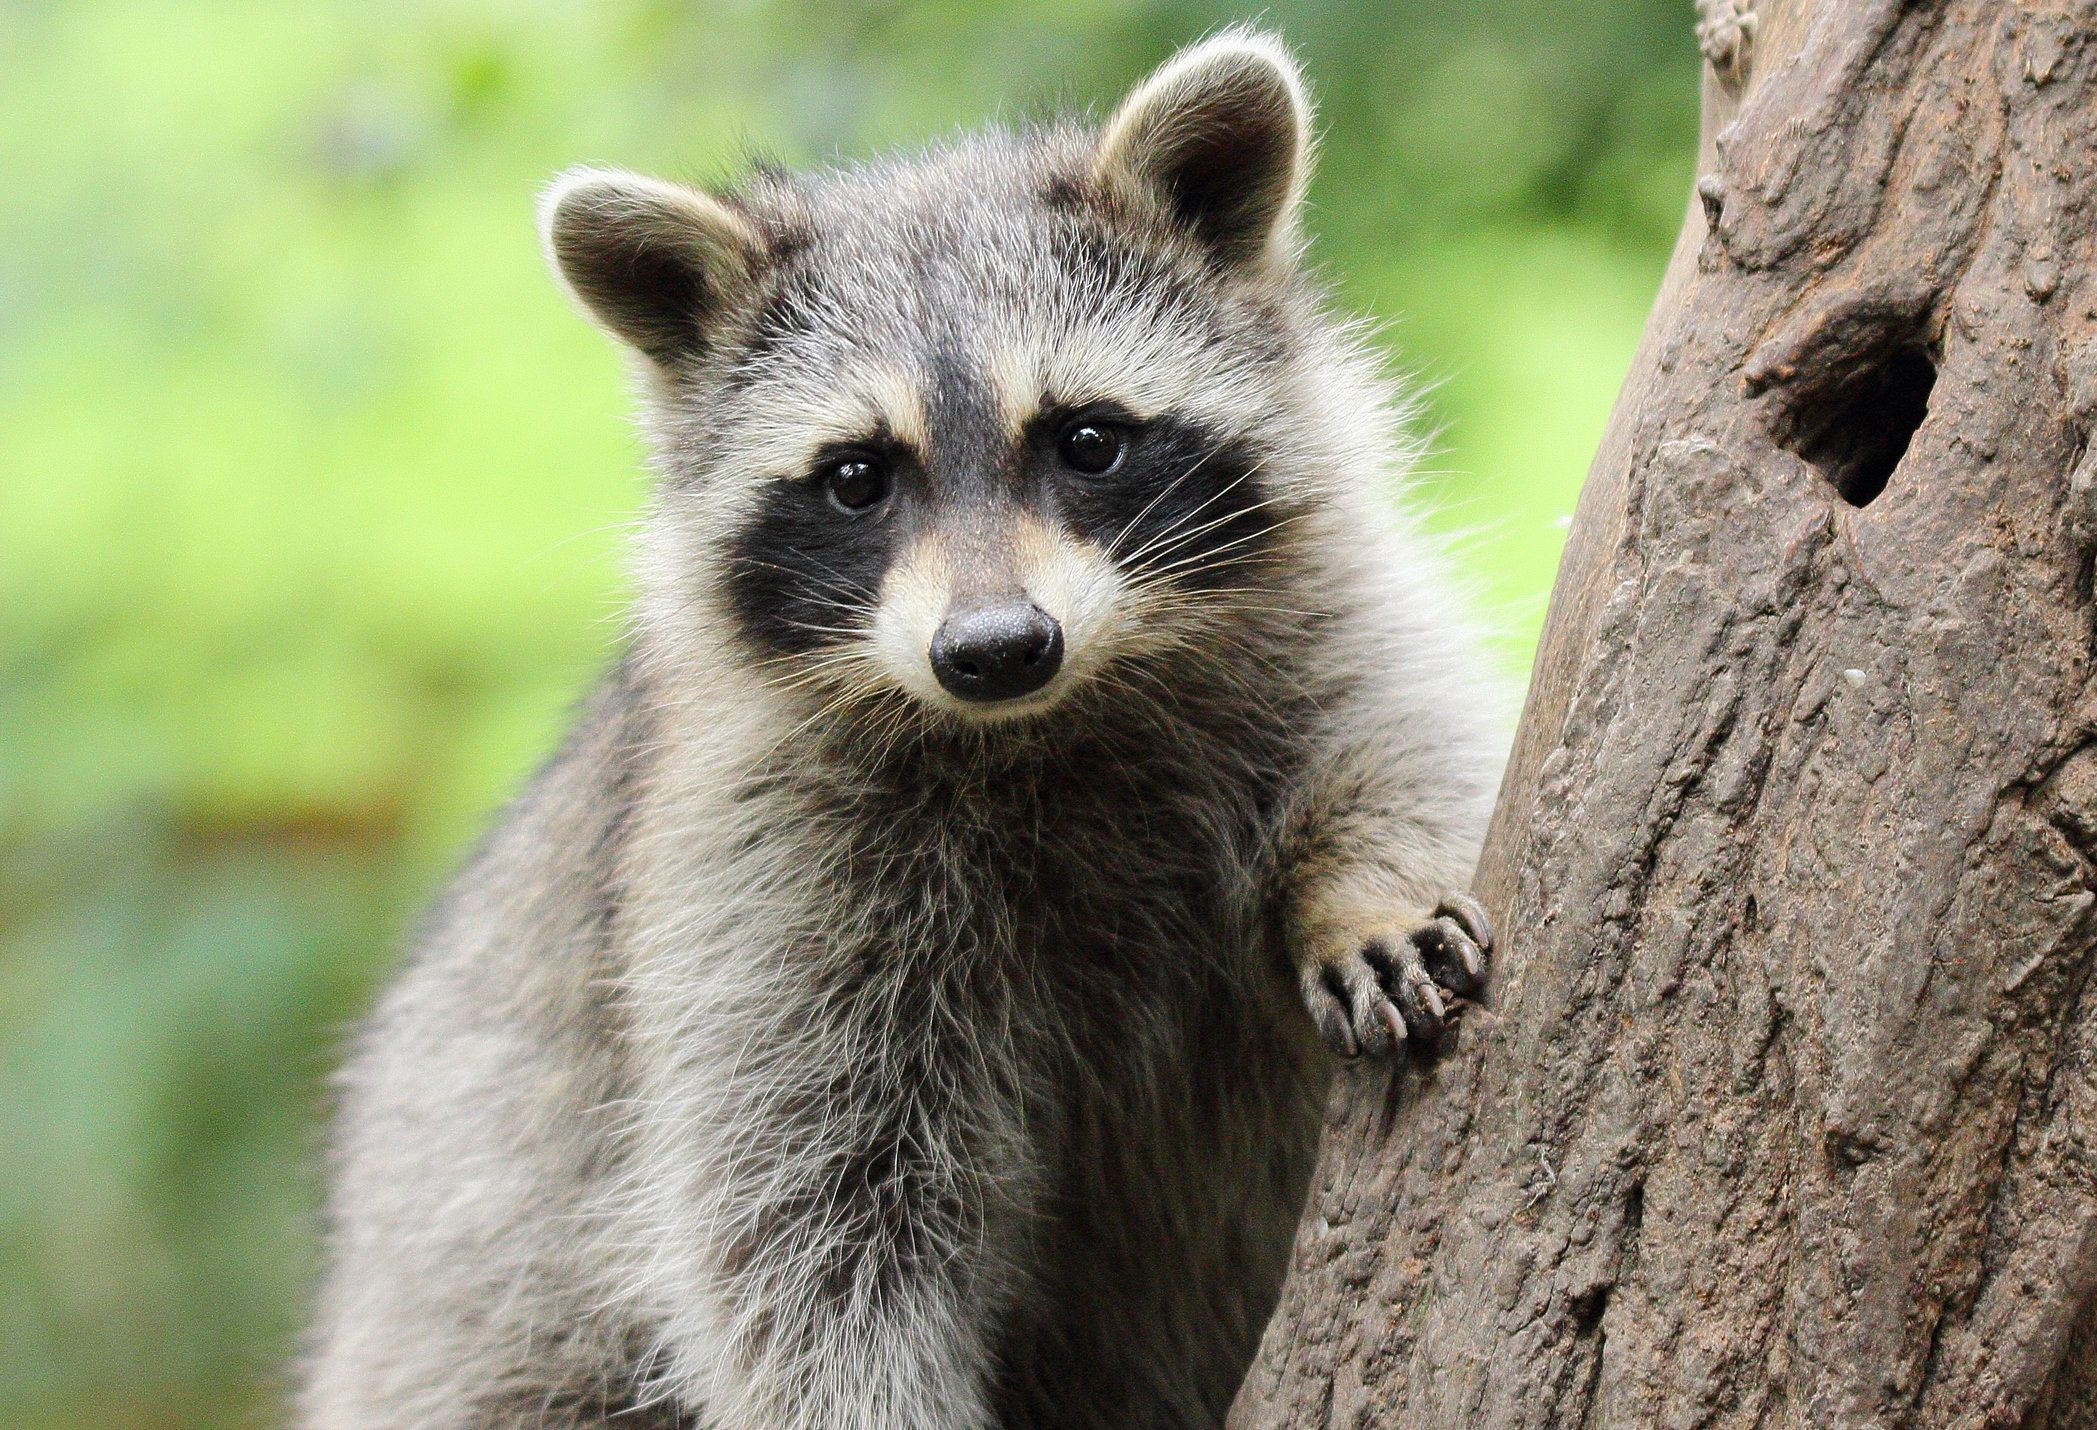 Yes, this raccoon is ridiculously cute, but it's best to just appreciate wildlife from a respectful distance.